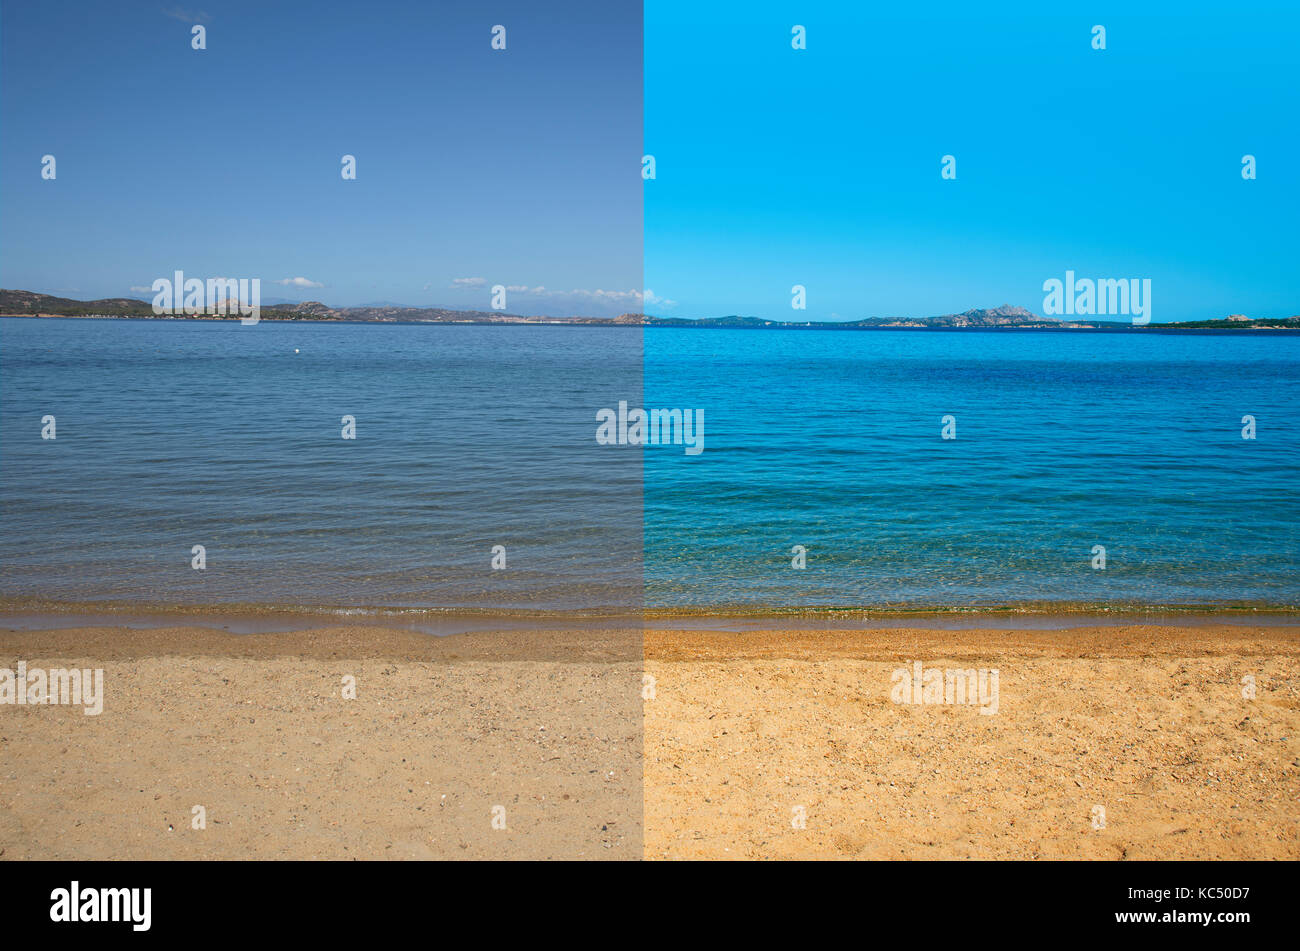 picture of a quiet beach and sea before and after the image editing process - Stock Image